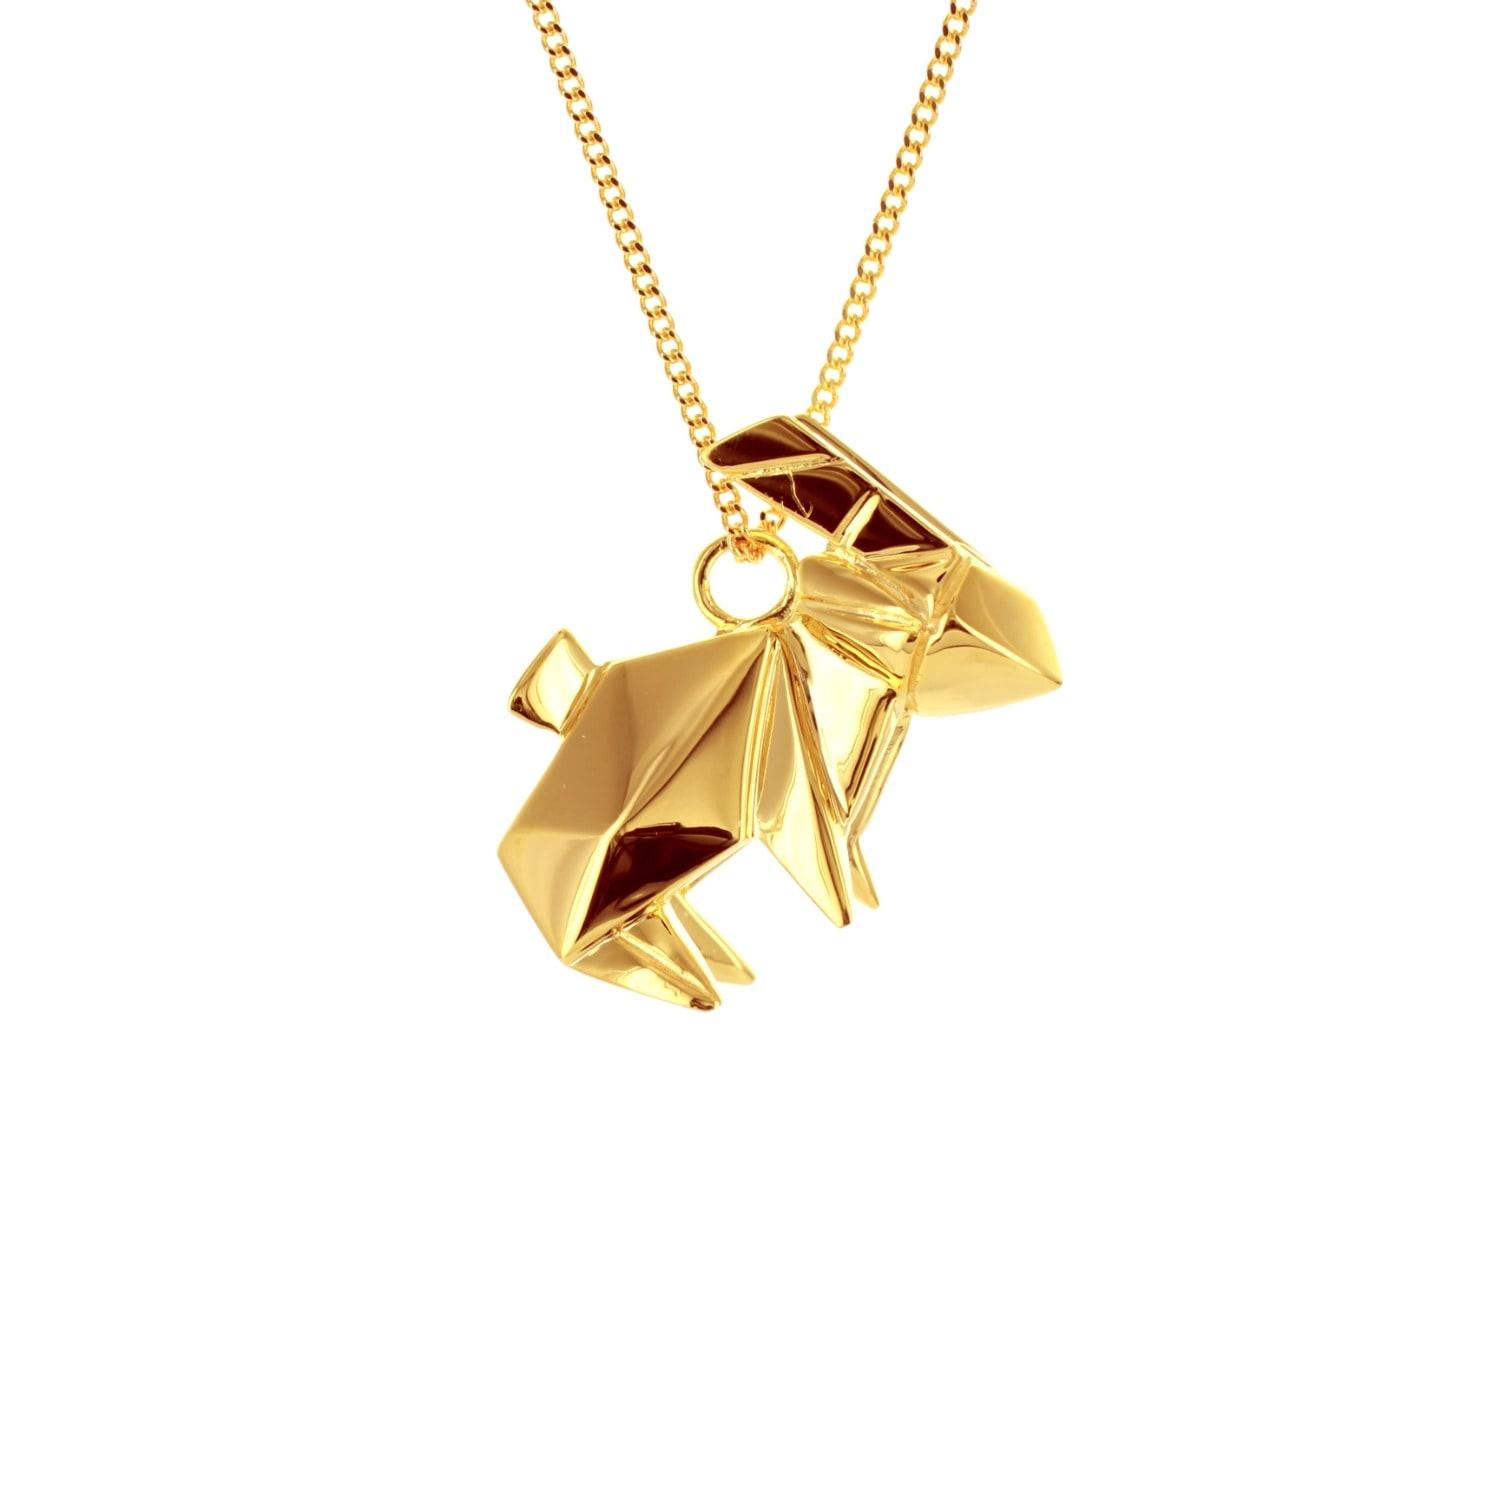 Origami jewellery Rabbit Necklace Gold Plated in Metallic ...